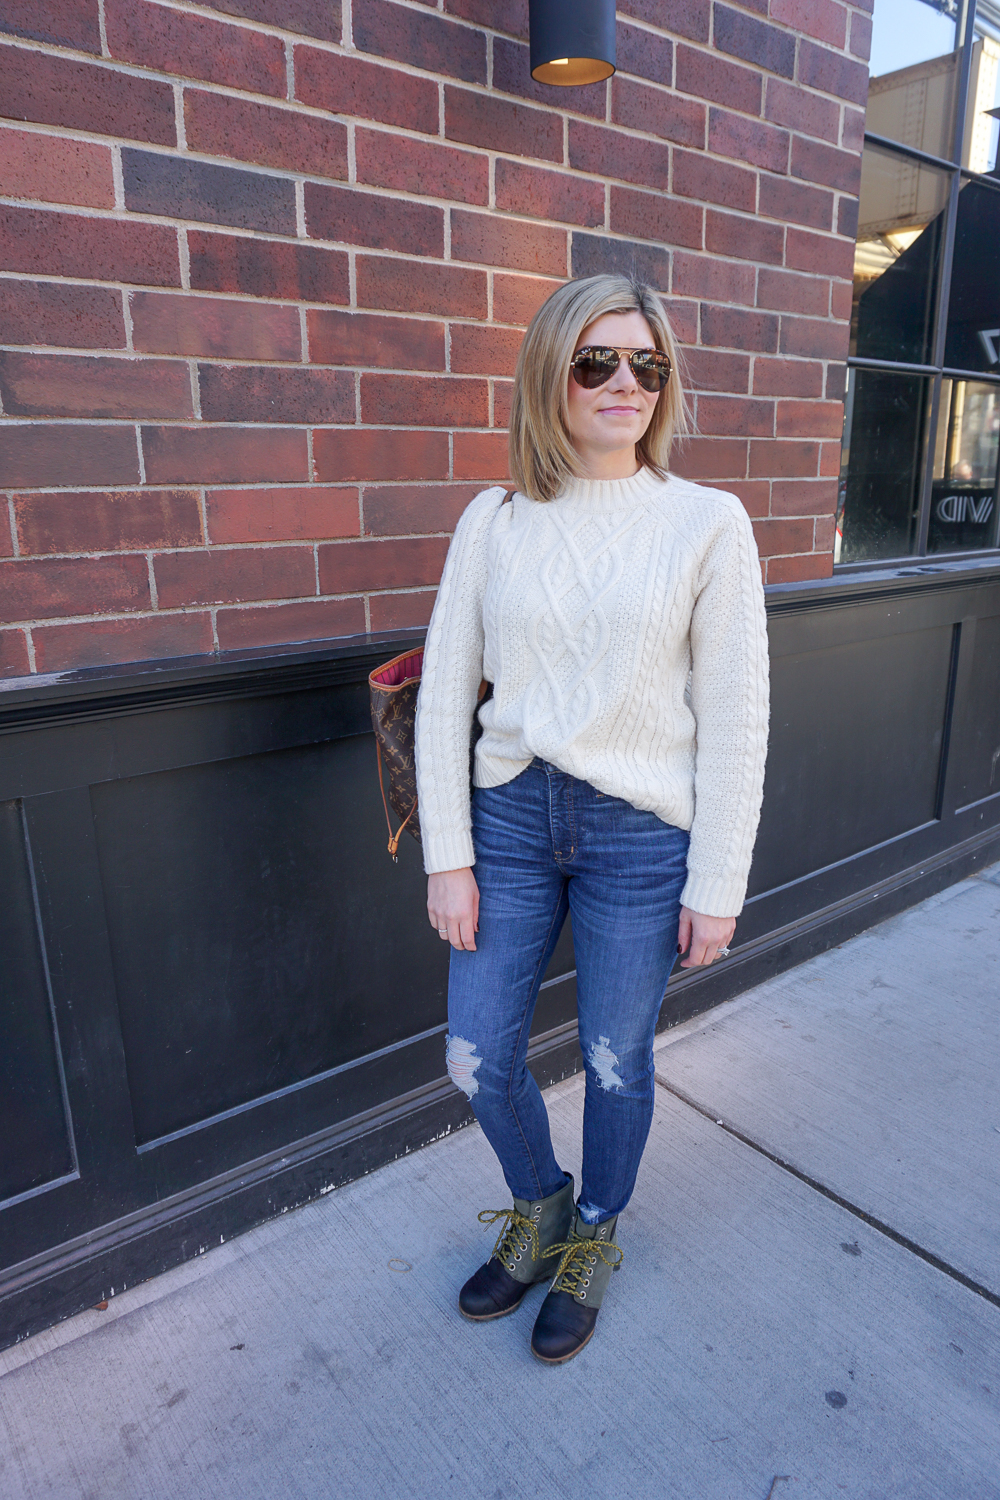 Jeans by Madewell